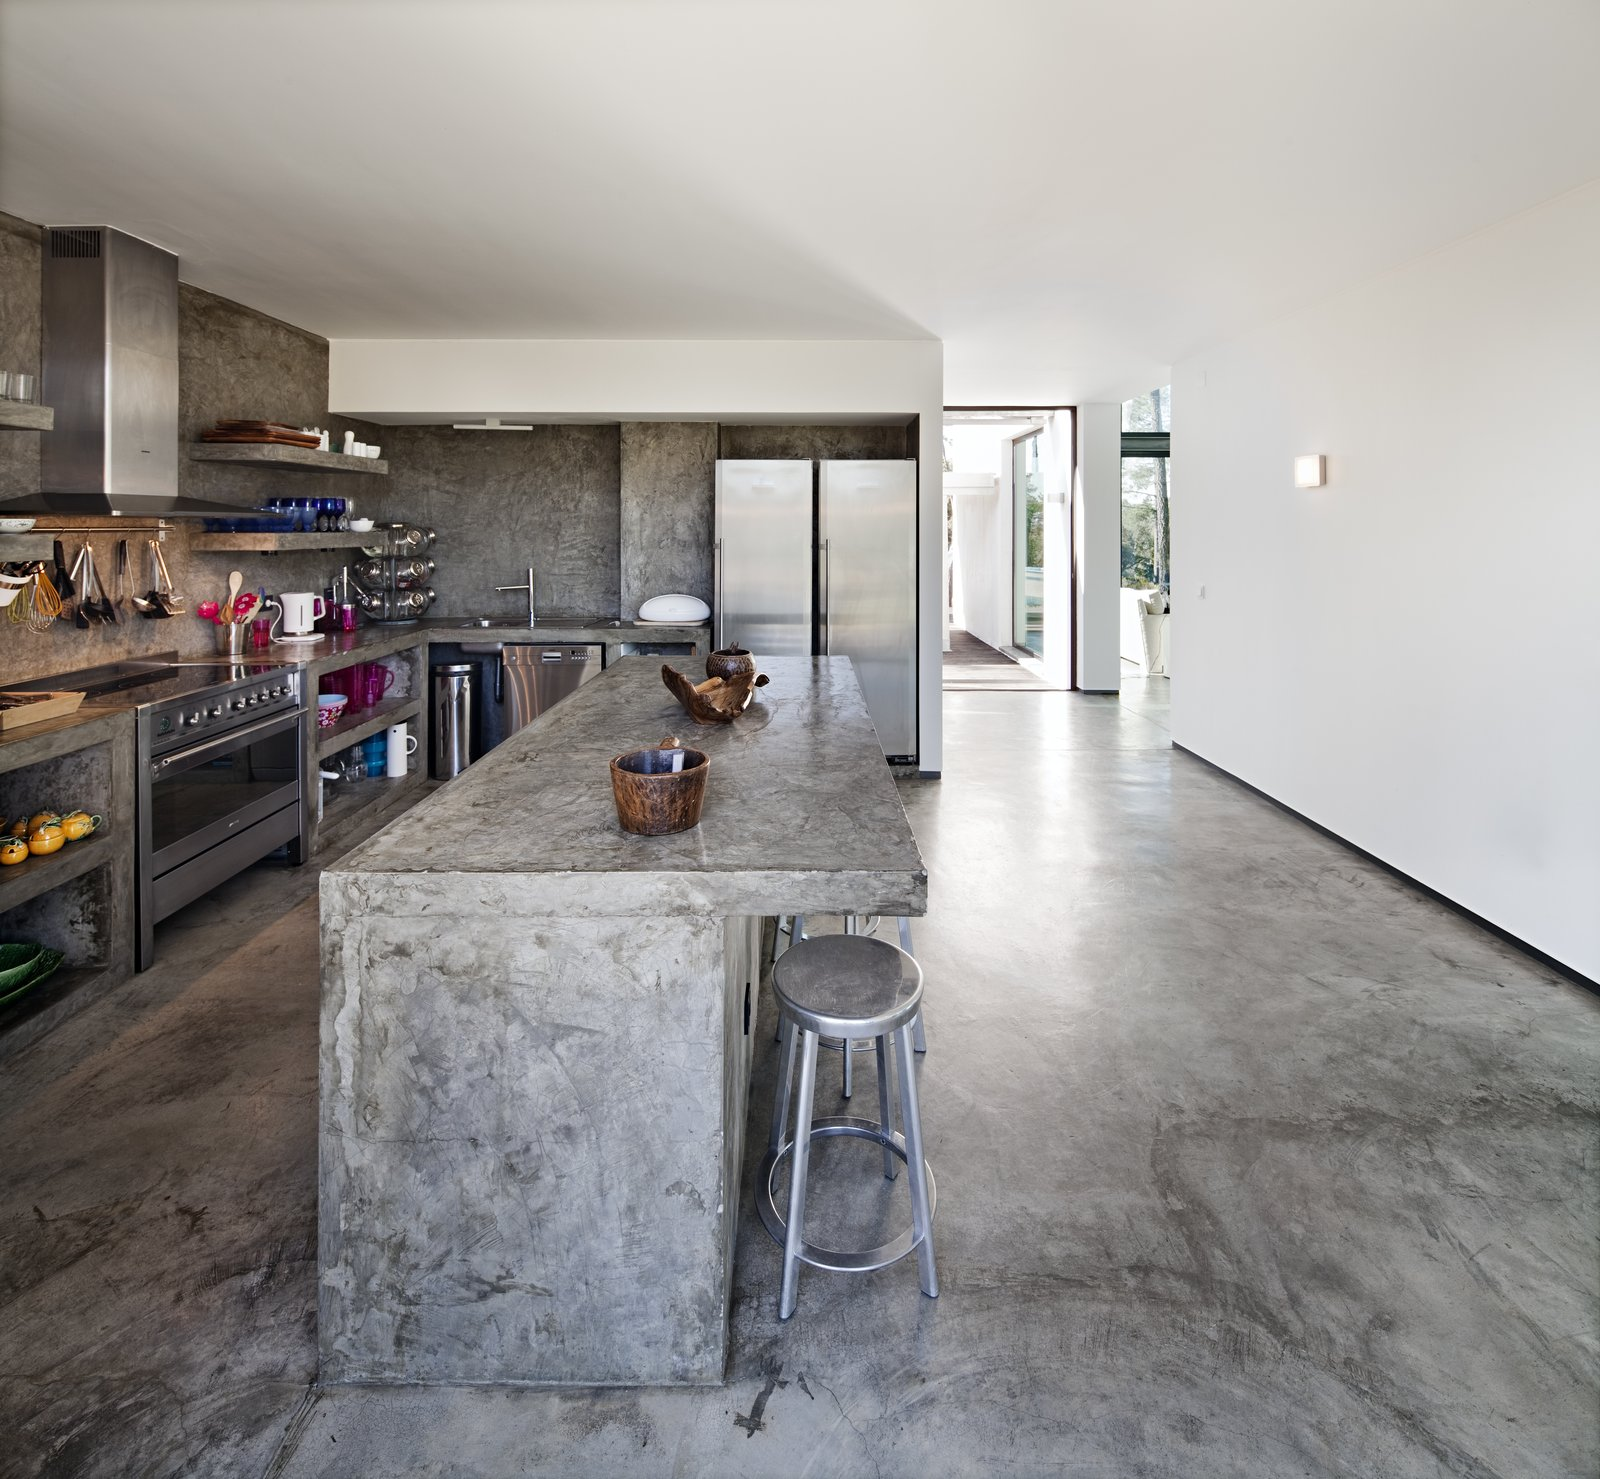 Kitchen, Concrete, Dishwasher, Range Hood, Wall Oven, Refrigerator, Drop In, Concrete, Open, Wall, Cooktops, Ceiling, and Concrete  Best Kitchen Drop In Cooktops Wall Photos from Escape to a Light-Filled, Beach-Meets-Forest Retreat in Portugal